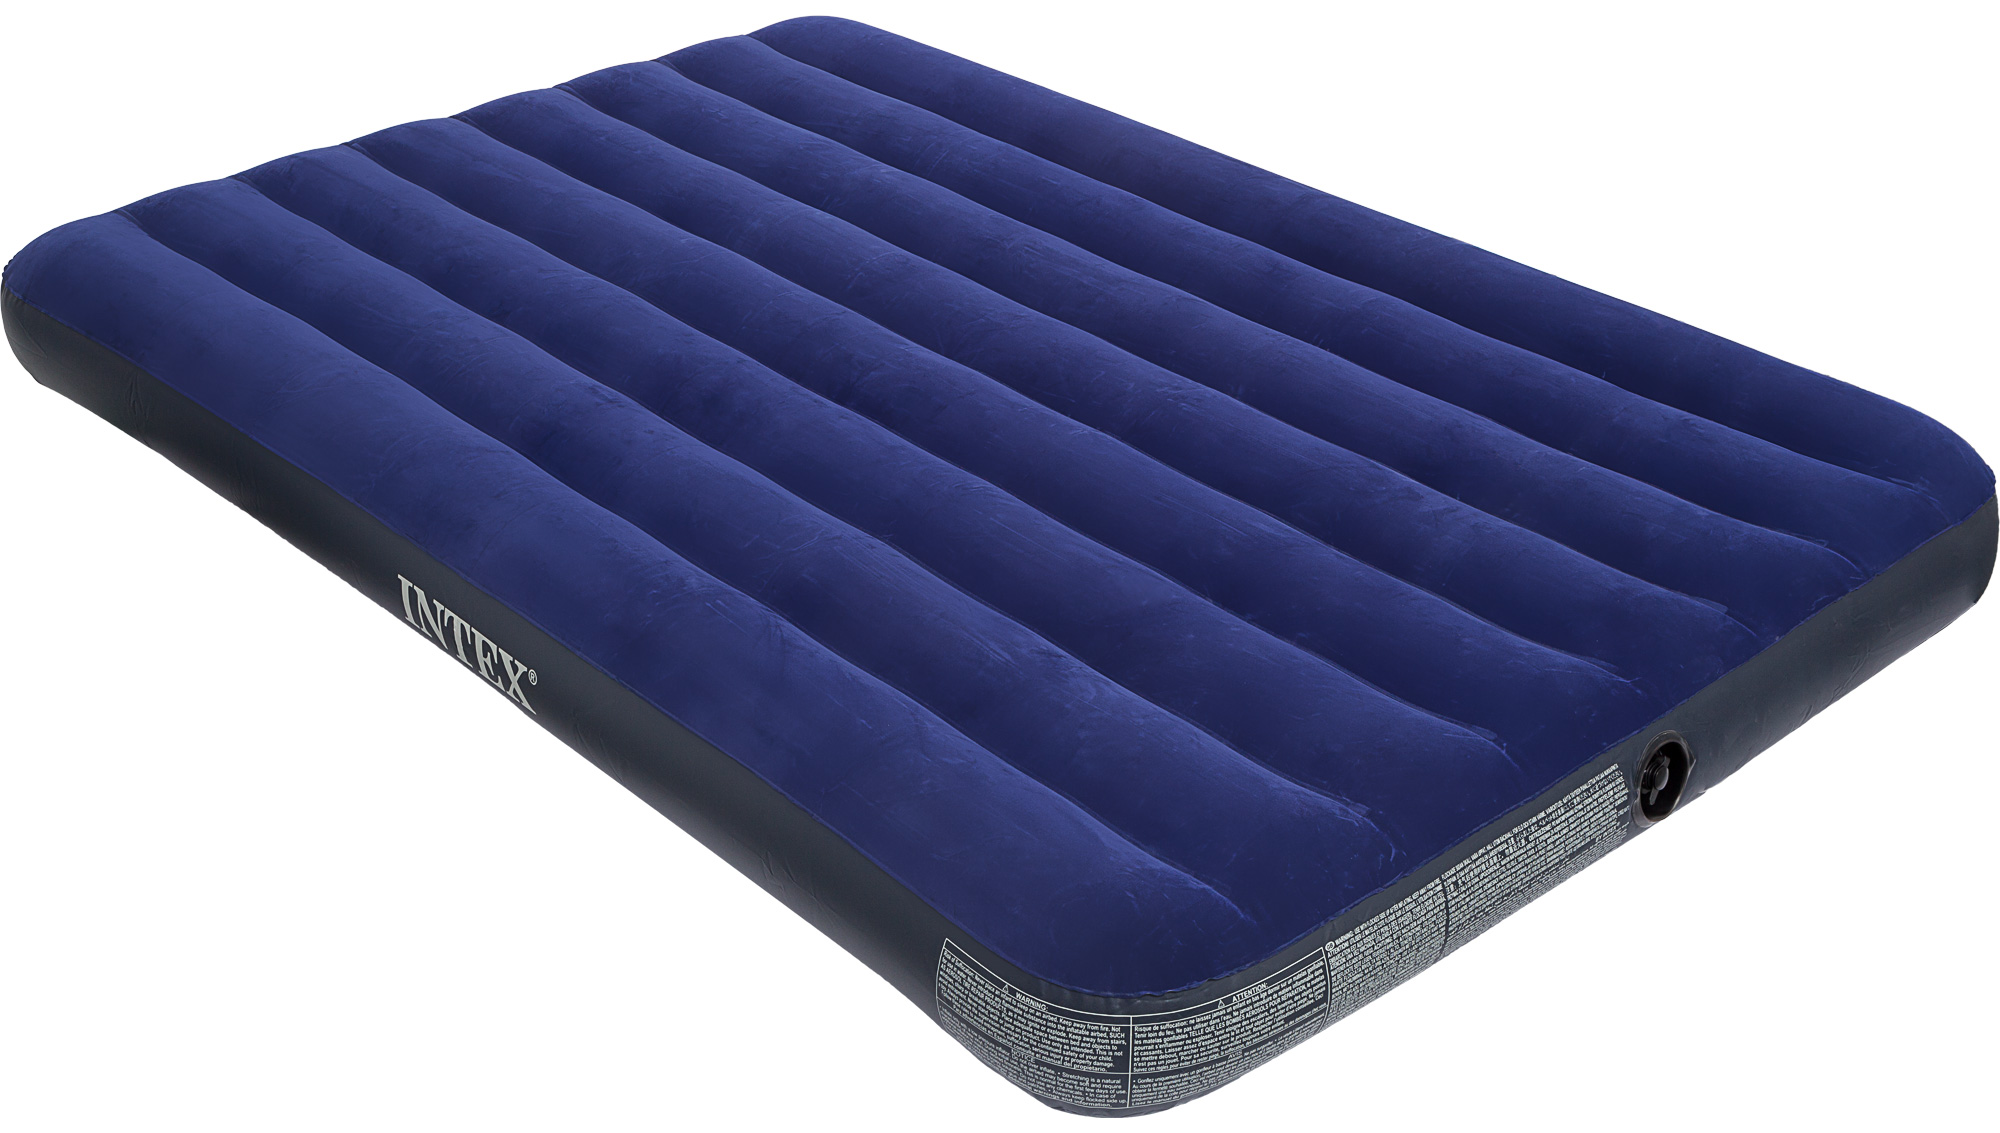 Intex Матрас надувной Intex Classic Downy Bed Full